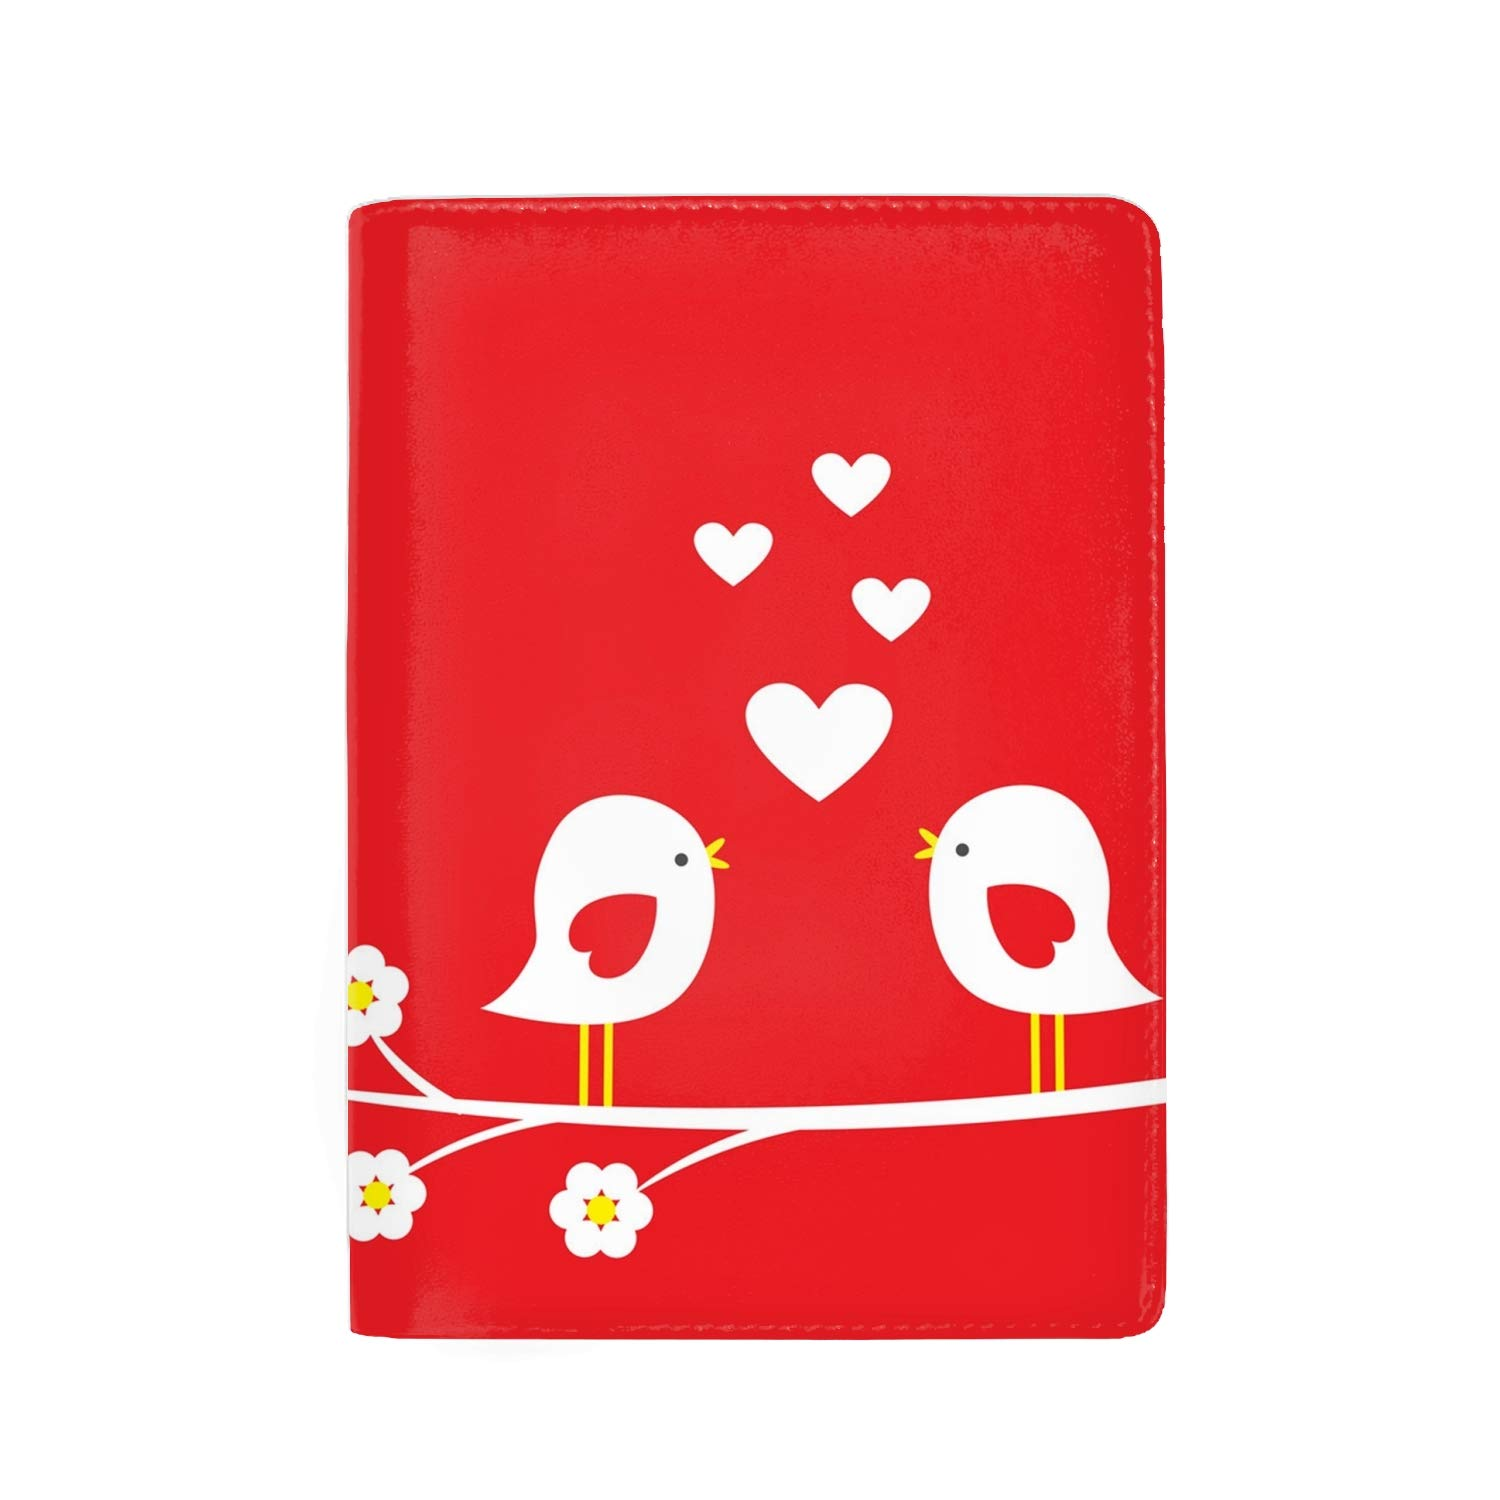 Watercolor Cute Passport Holder Cover Wallet RFID Blocking Leather Card Case Travel Document Organizer